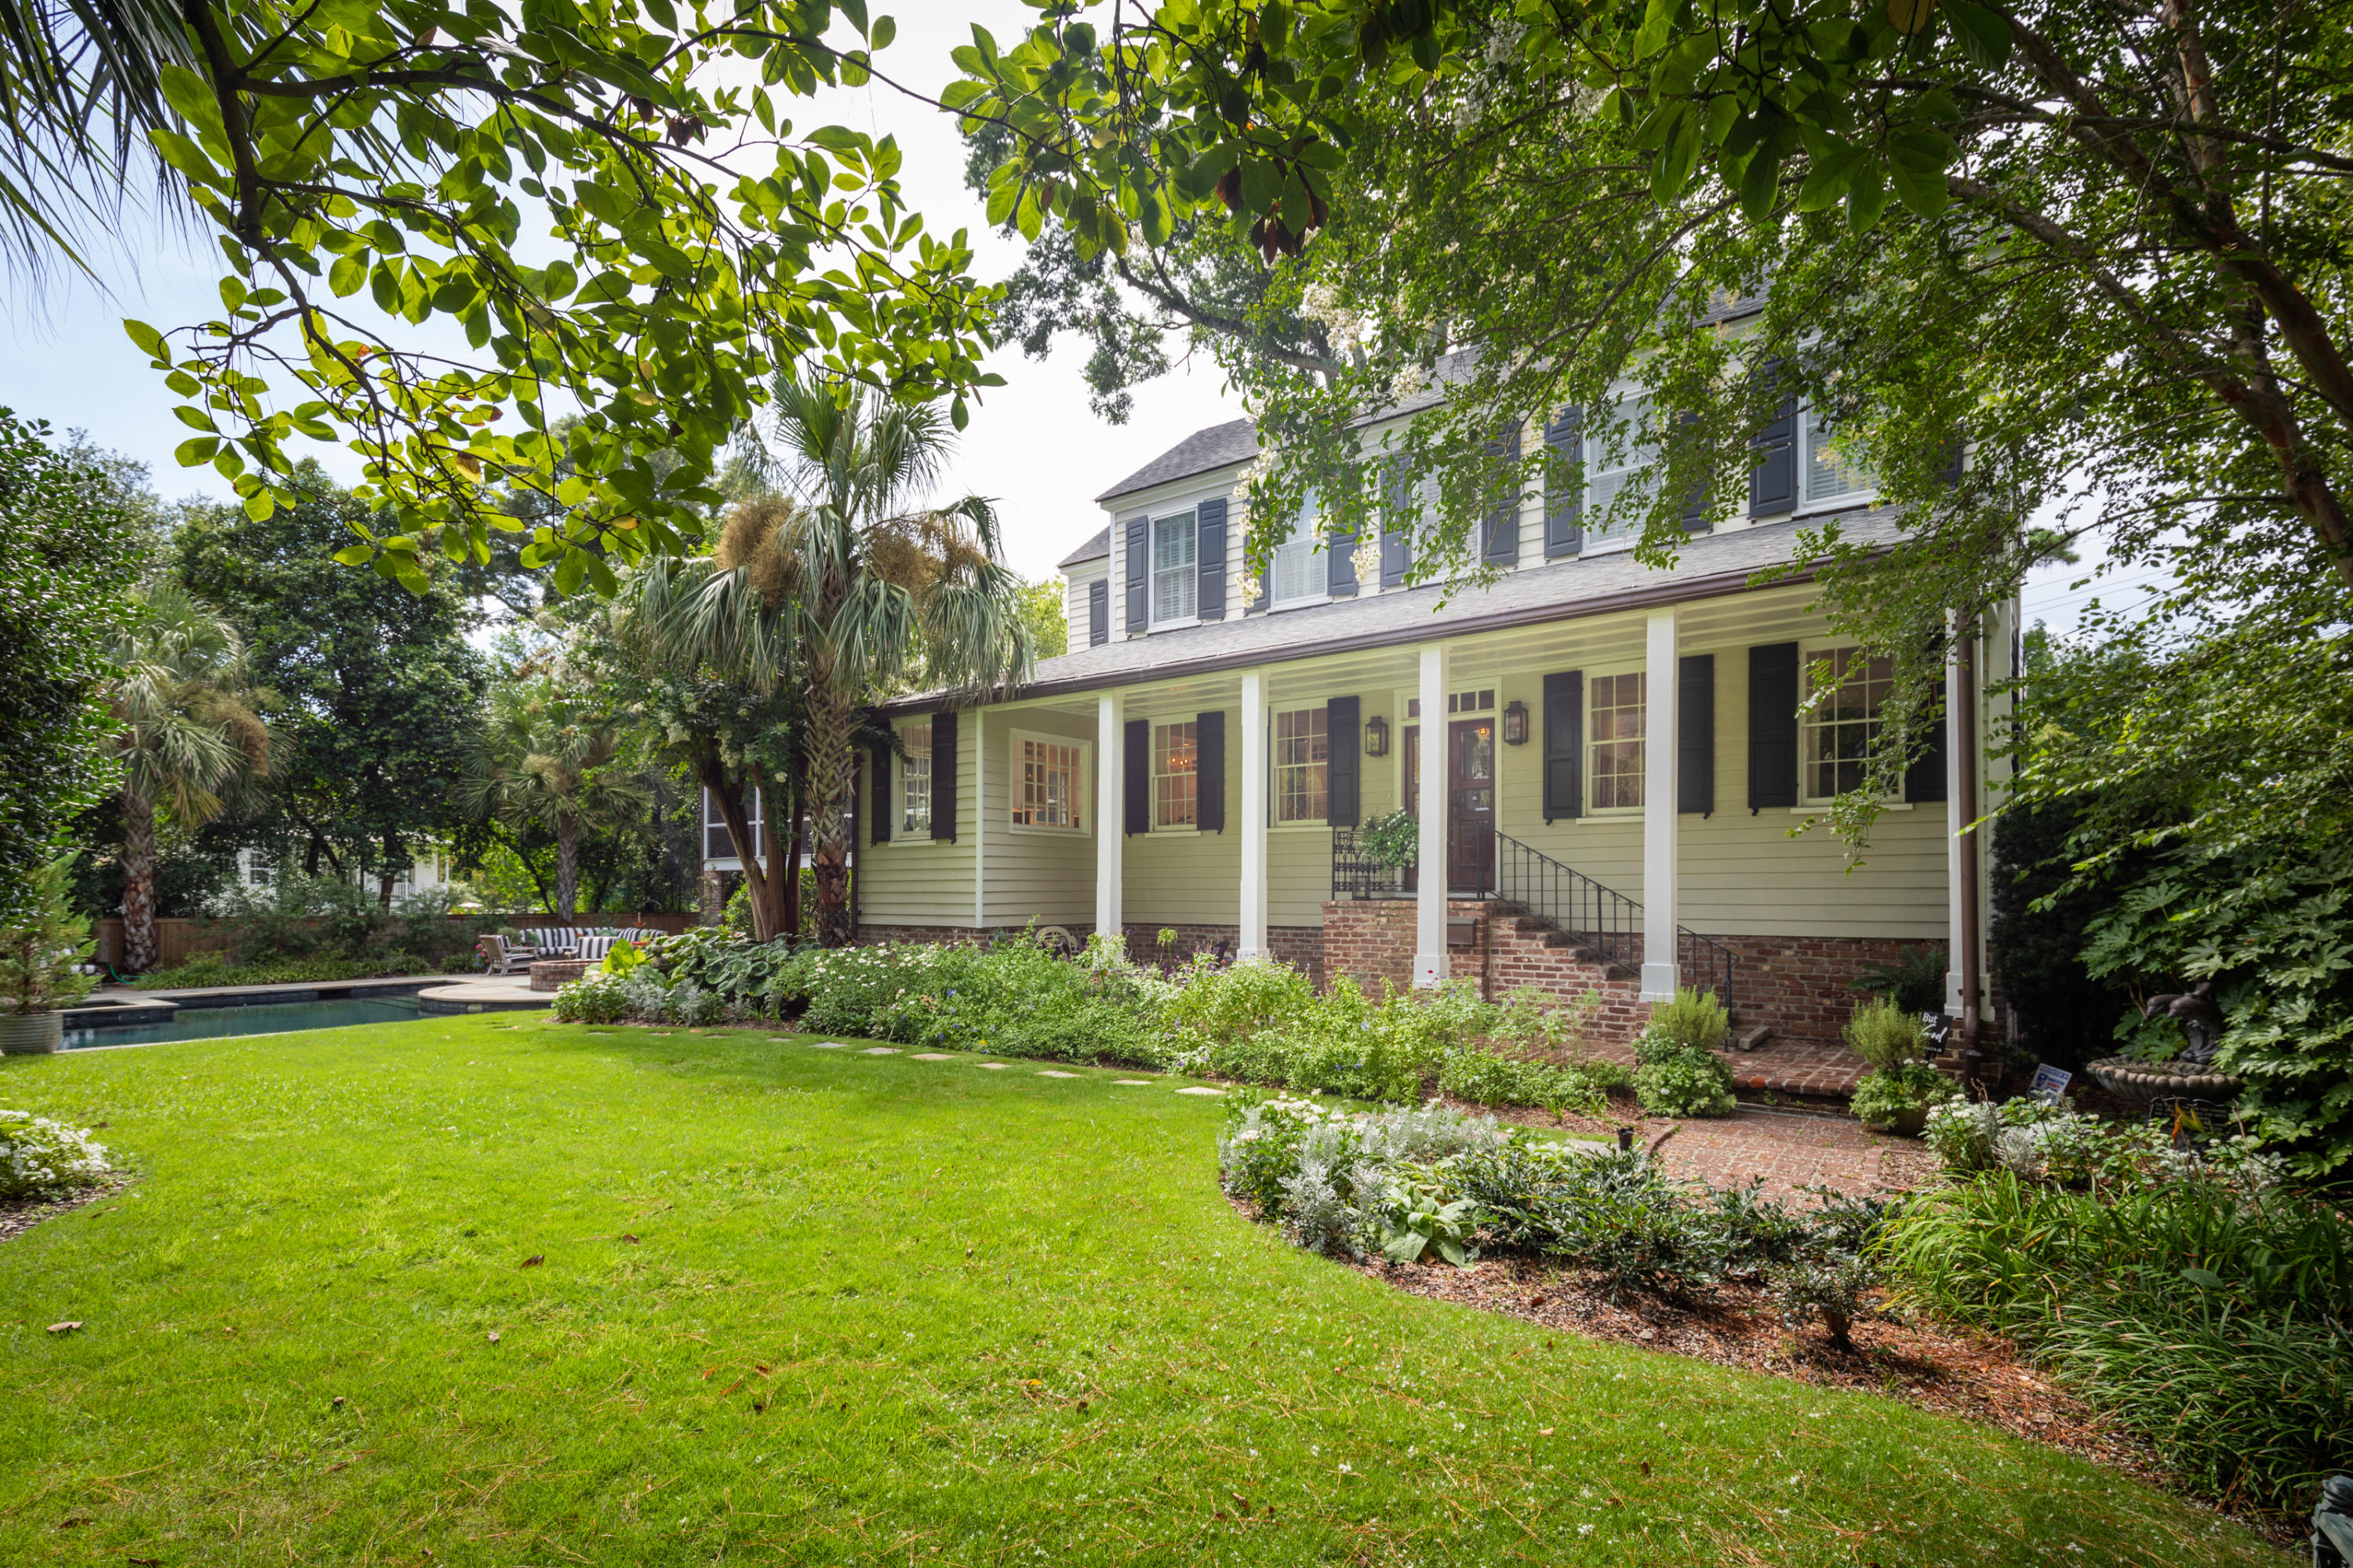 Old Village Homes For Sale - 429 Whilden, Mount Pleasant, SC - 3